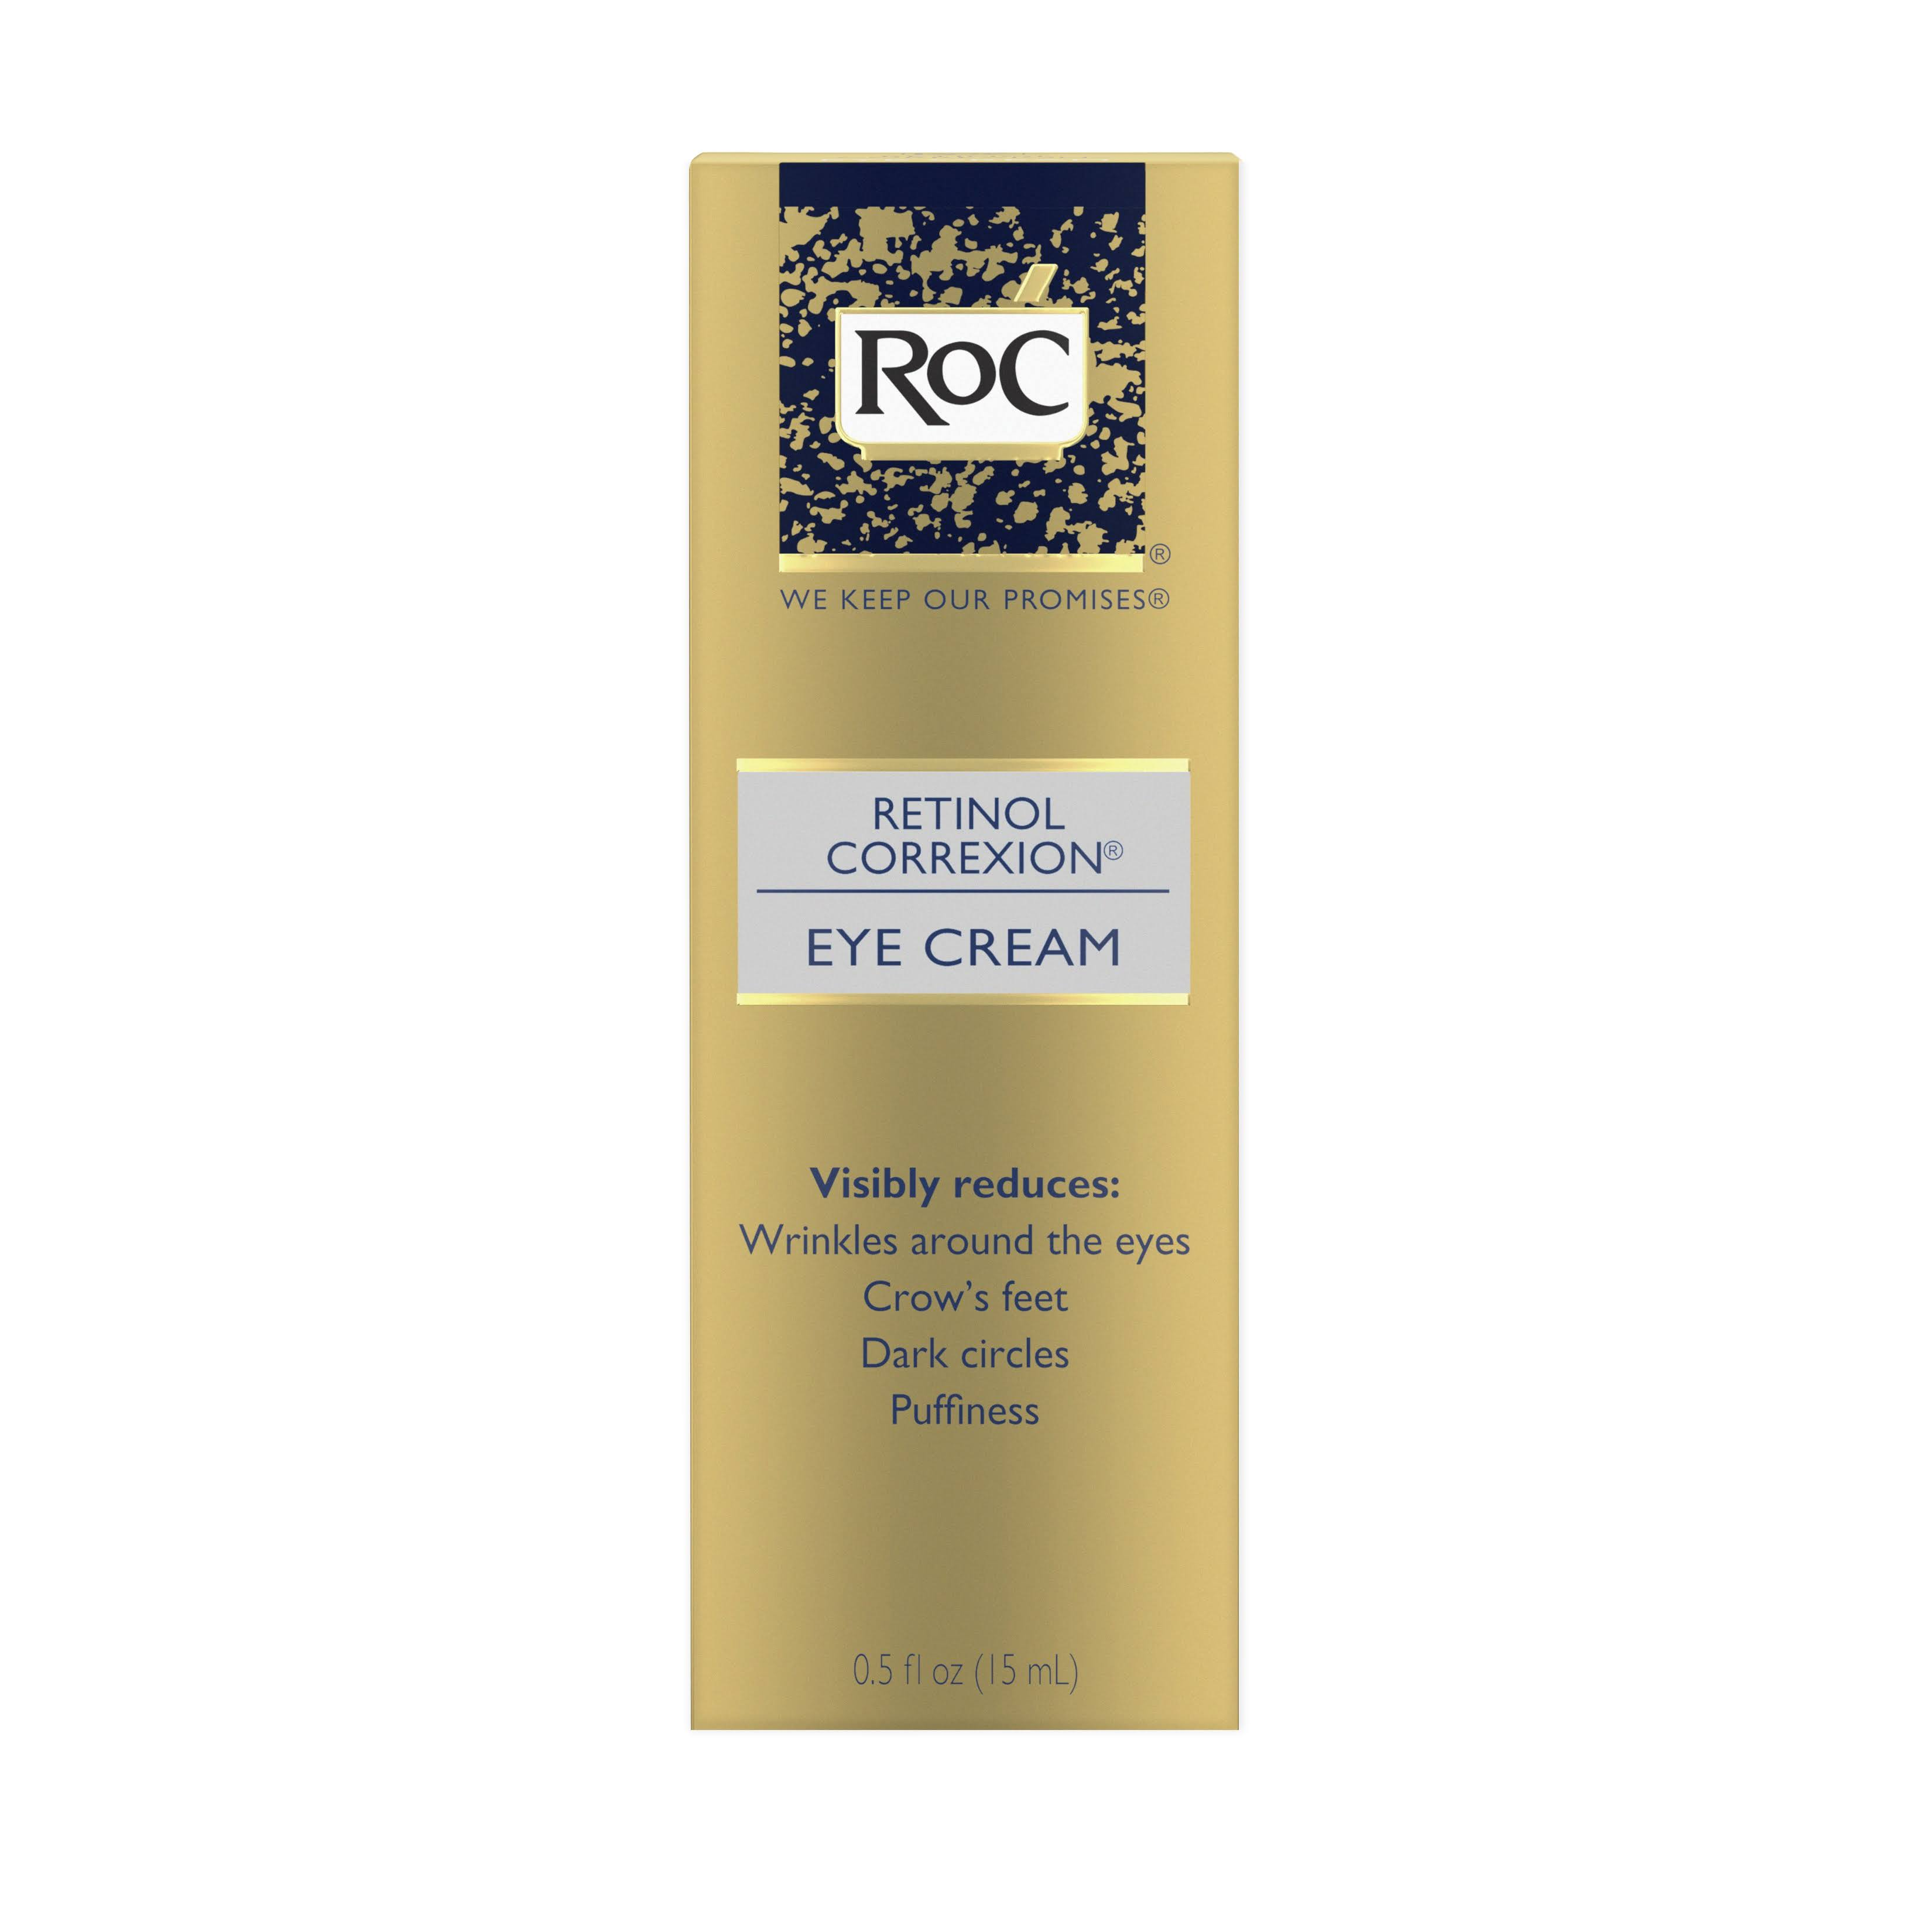 Roc Retinol Correxion Eye Cream - 15ml